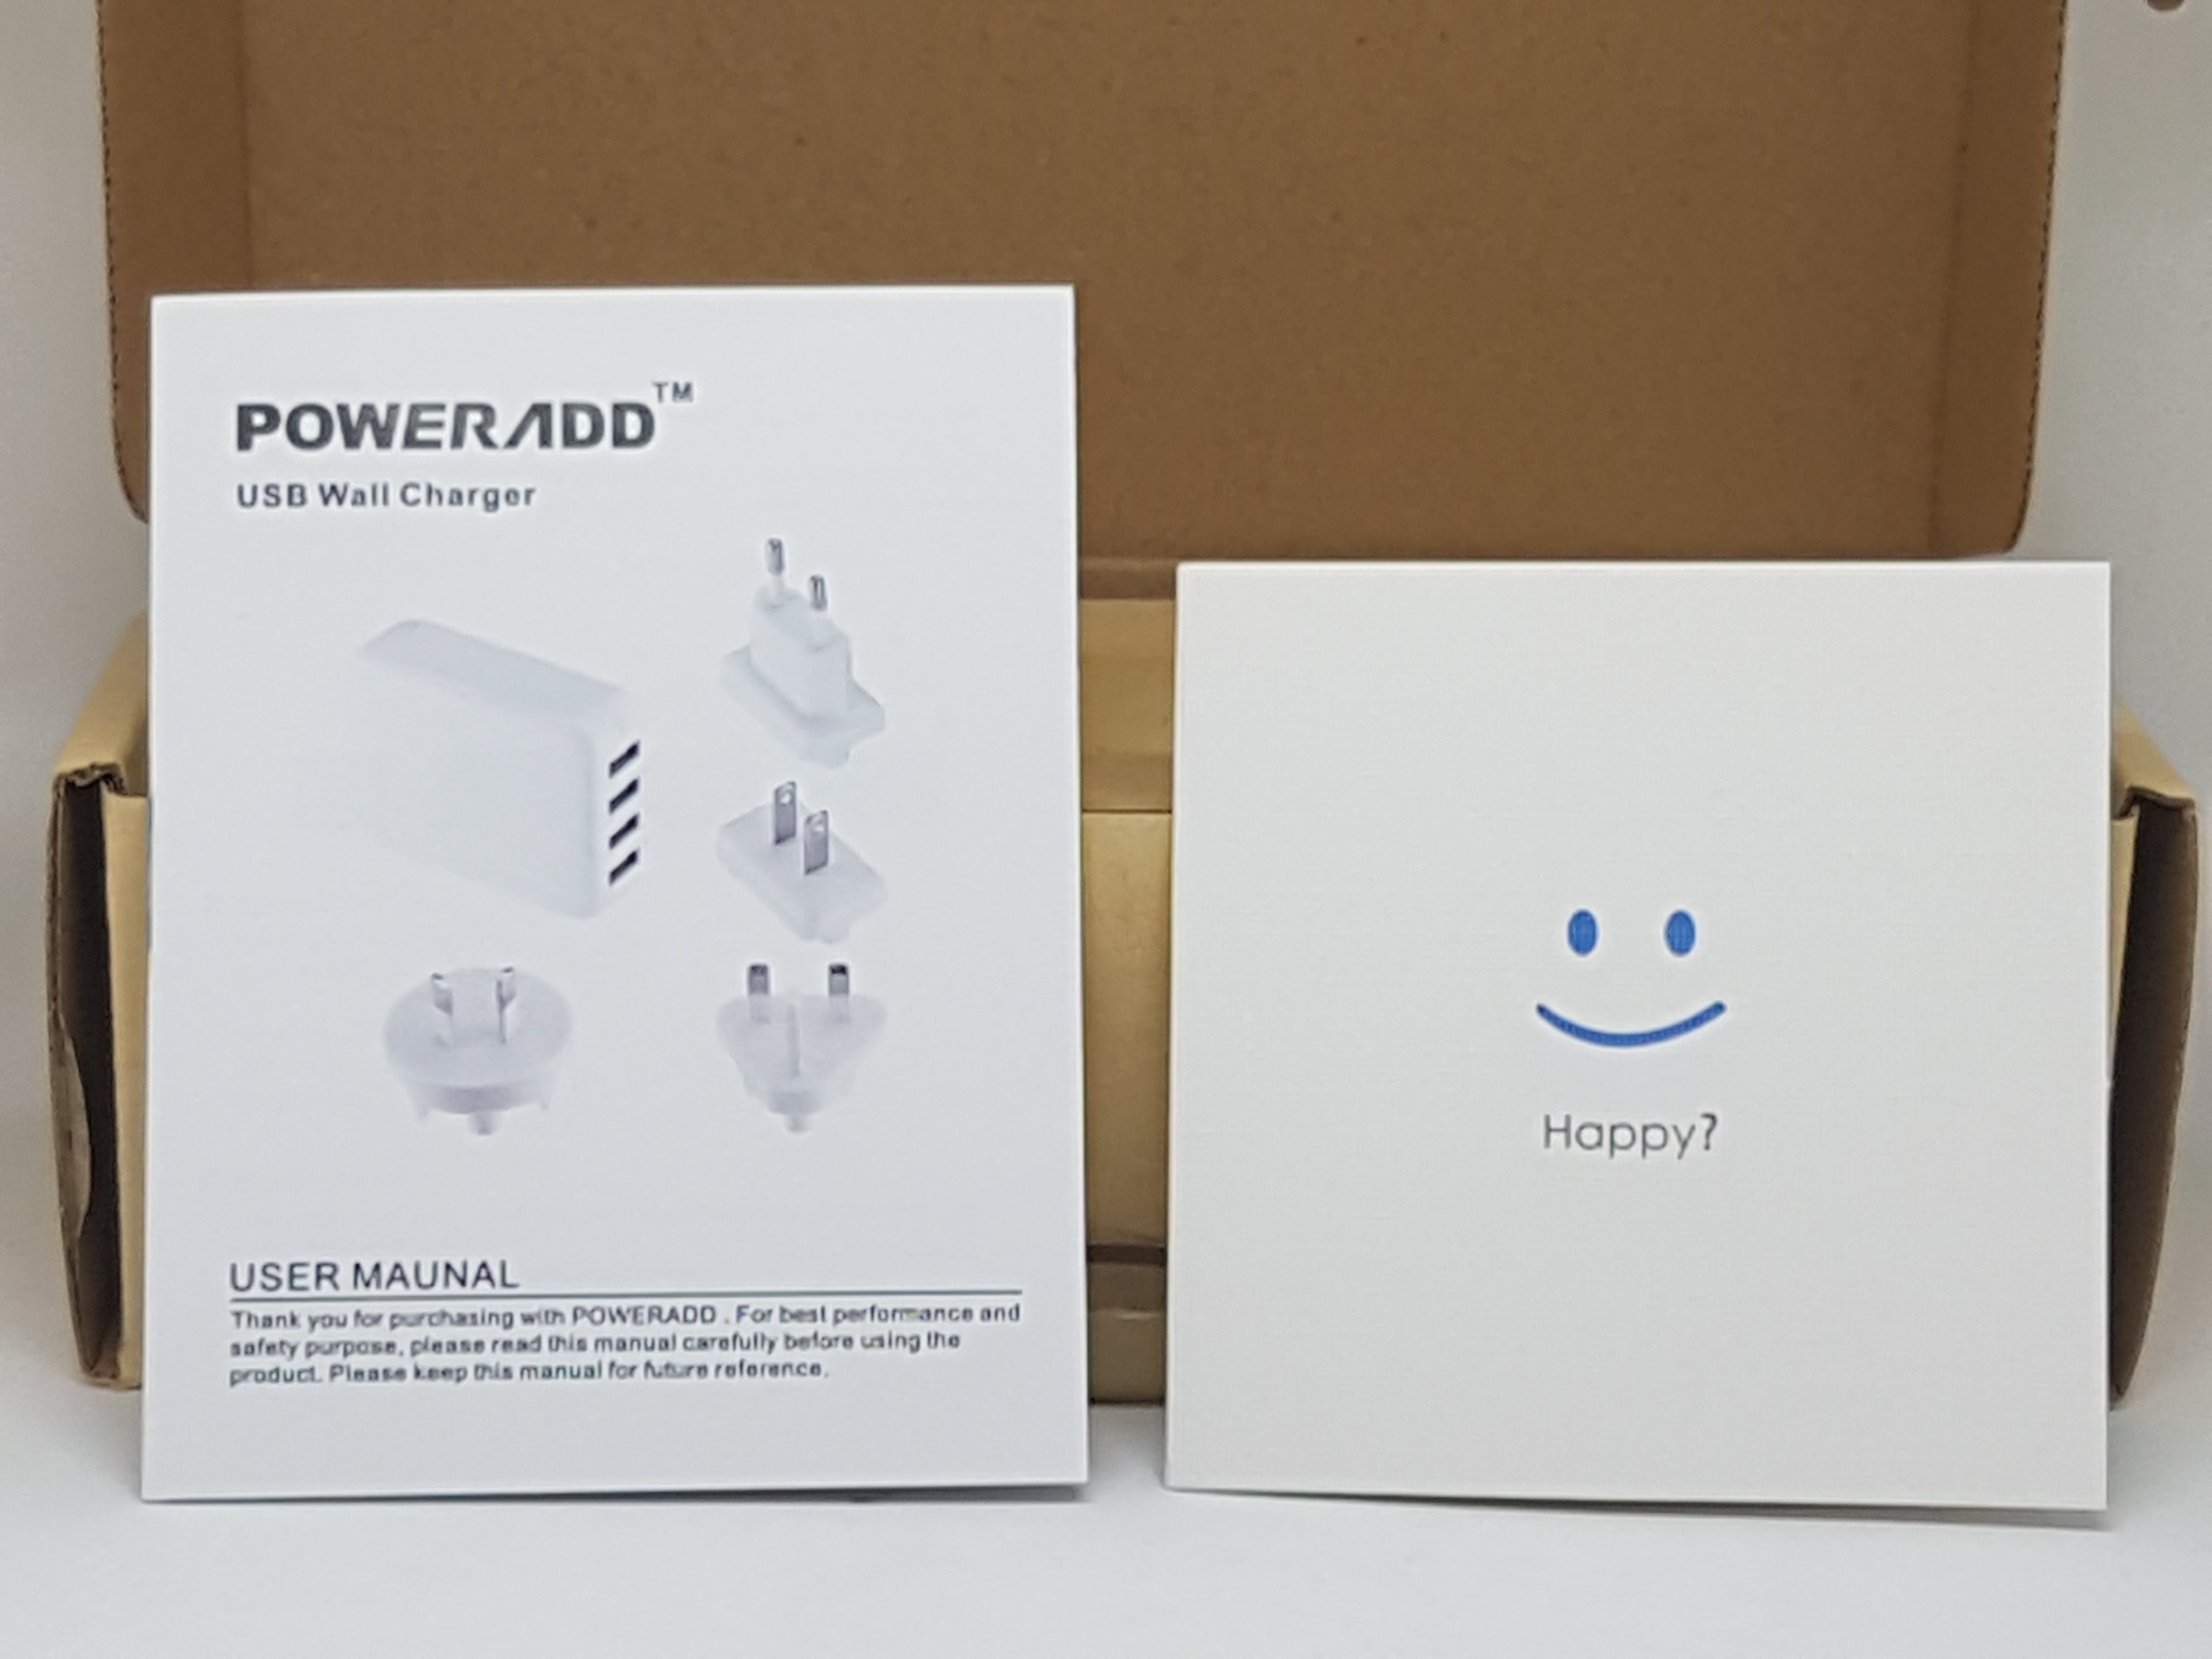 POWERADD-Chargeur-4-Ports-USB - POWERADD-Chargeur-4-Ports-USB-9.jpg